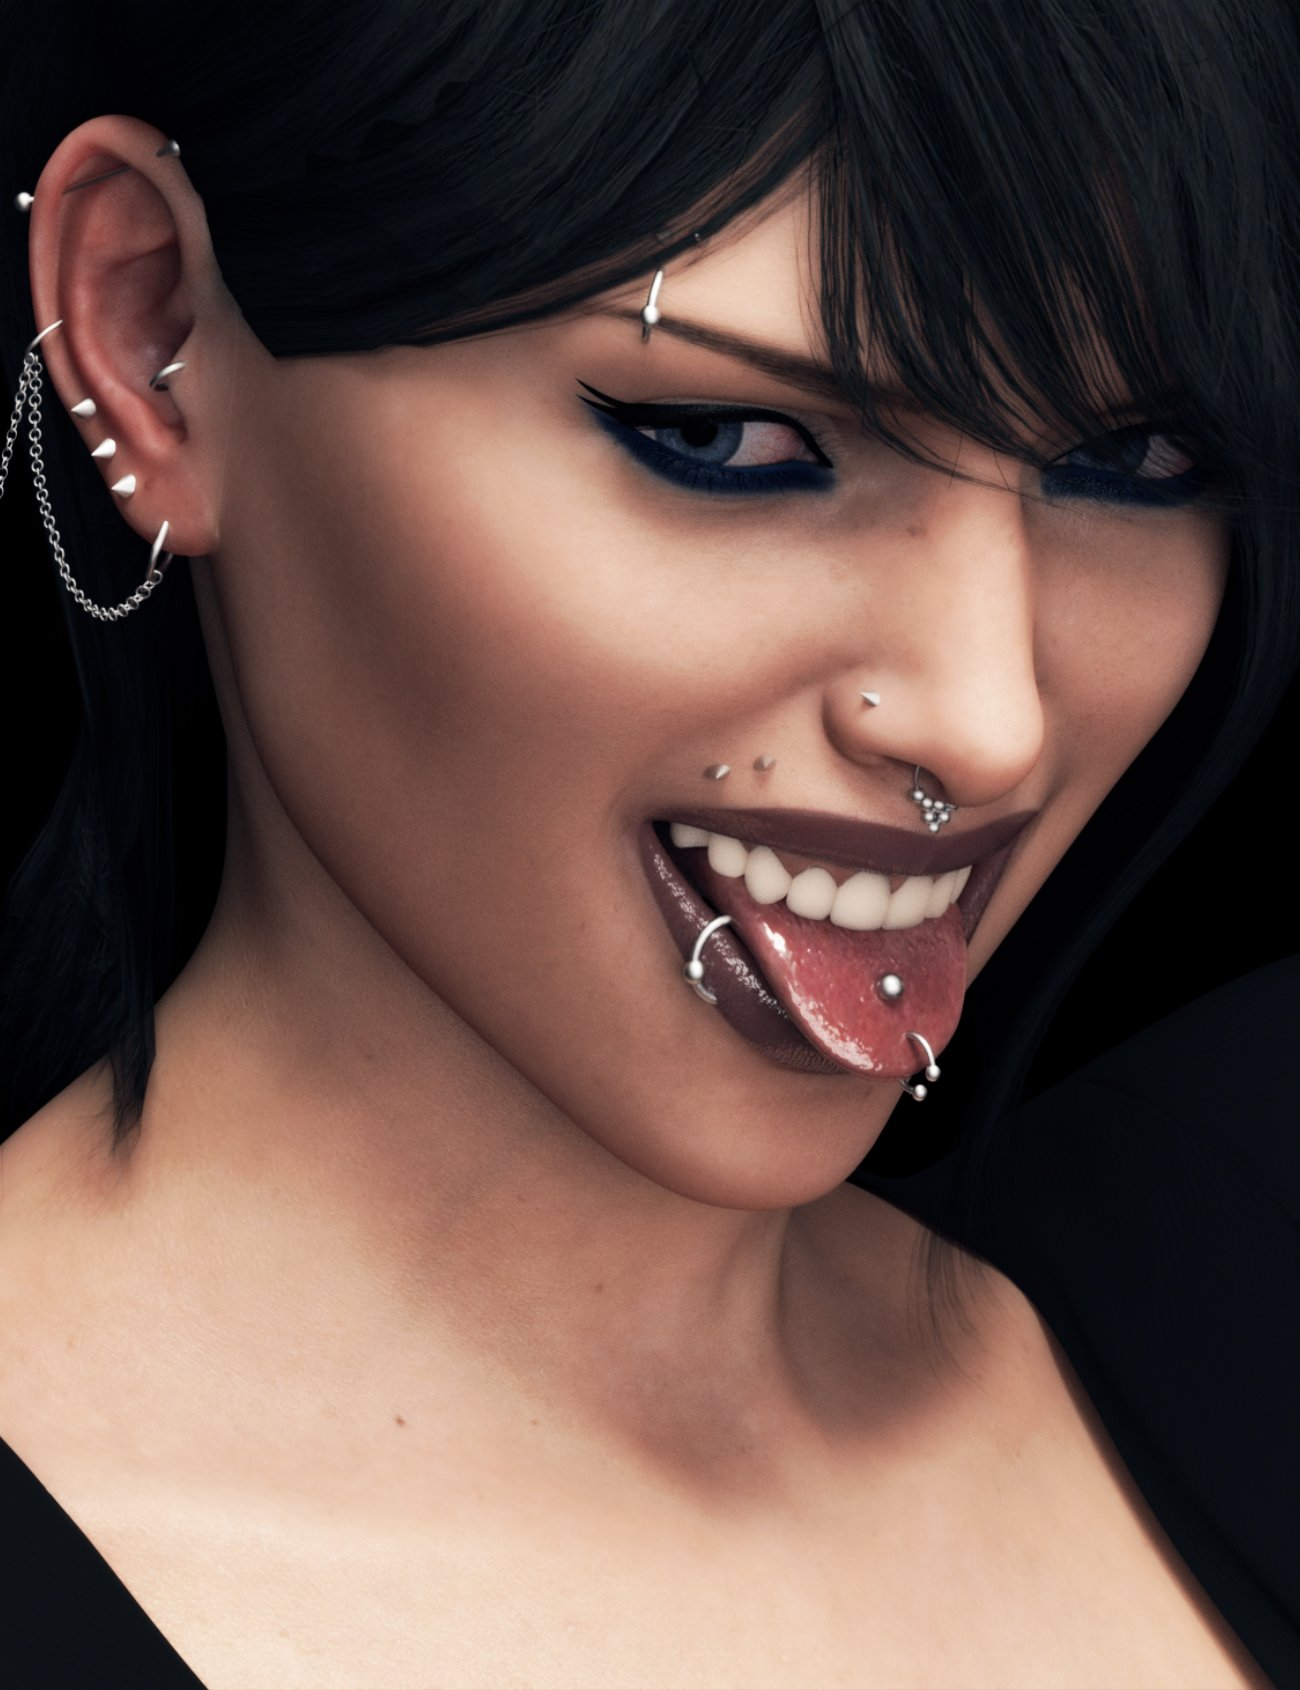 Piercing Collection by: Neikdian, 3D Models by Daz 3D